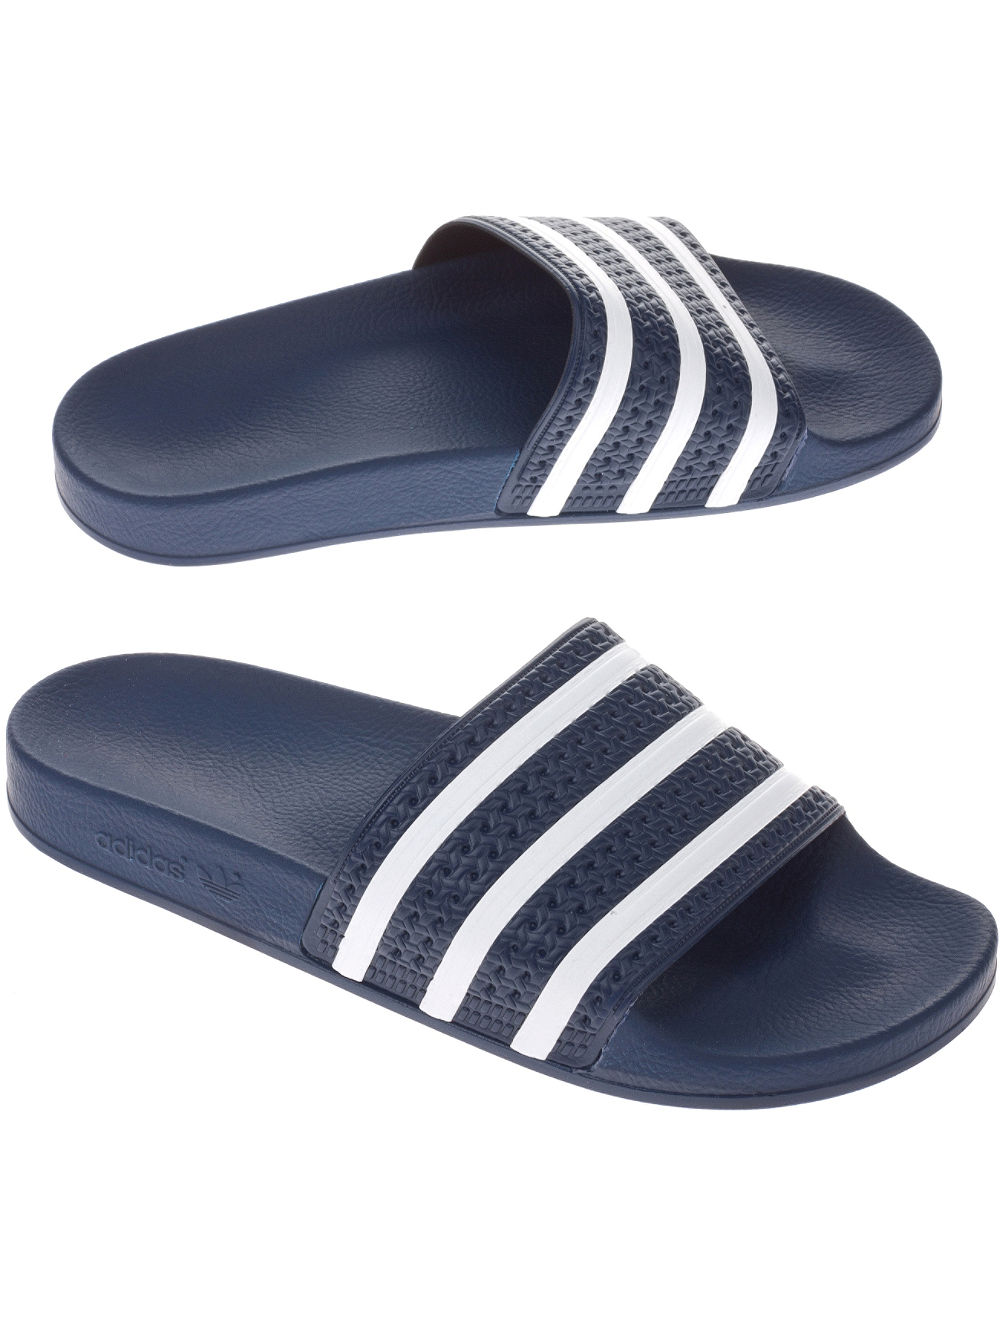 24b3433d0 Buy adidas Originals Adilette Sandals online at Blue Tomato